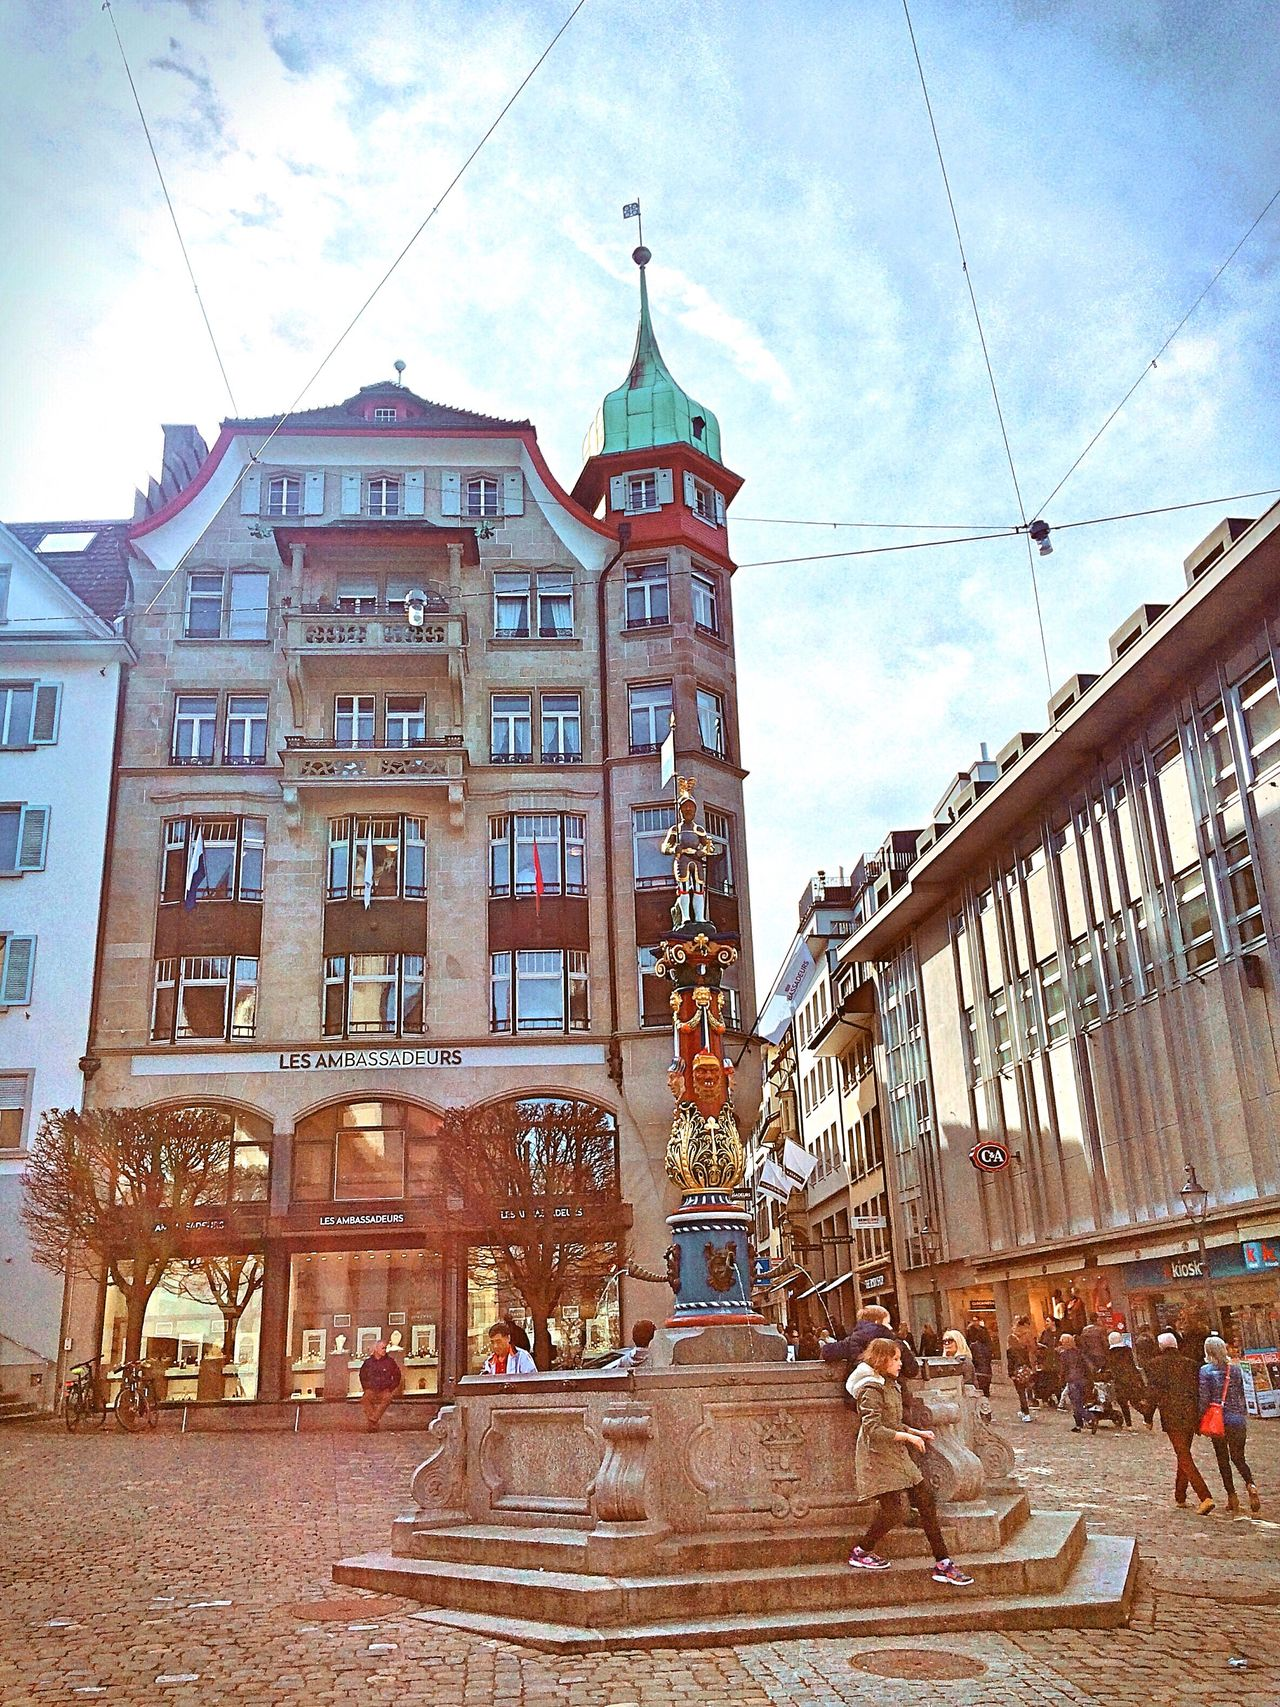 Luzern Switzerland Building Exterior Architecture Built Structure Sky Travel Destinations Outdoors City Day Real People